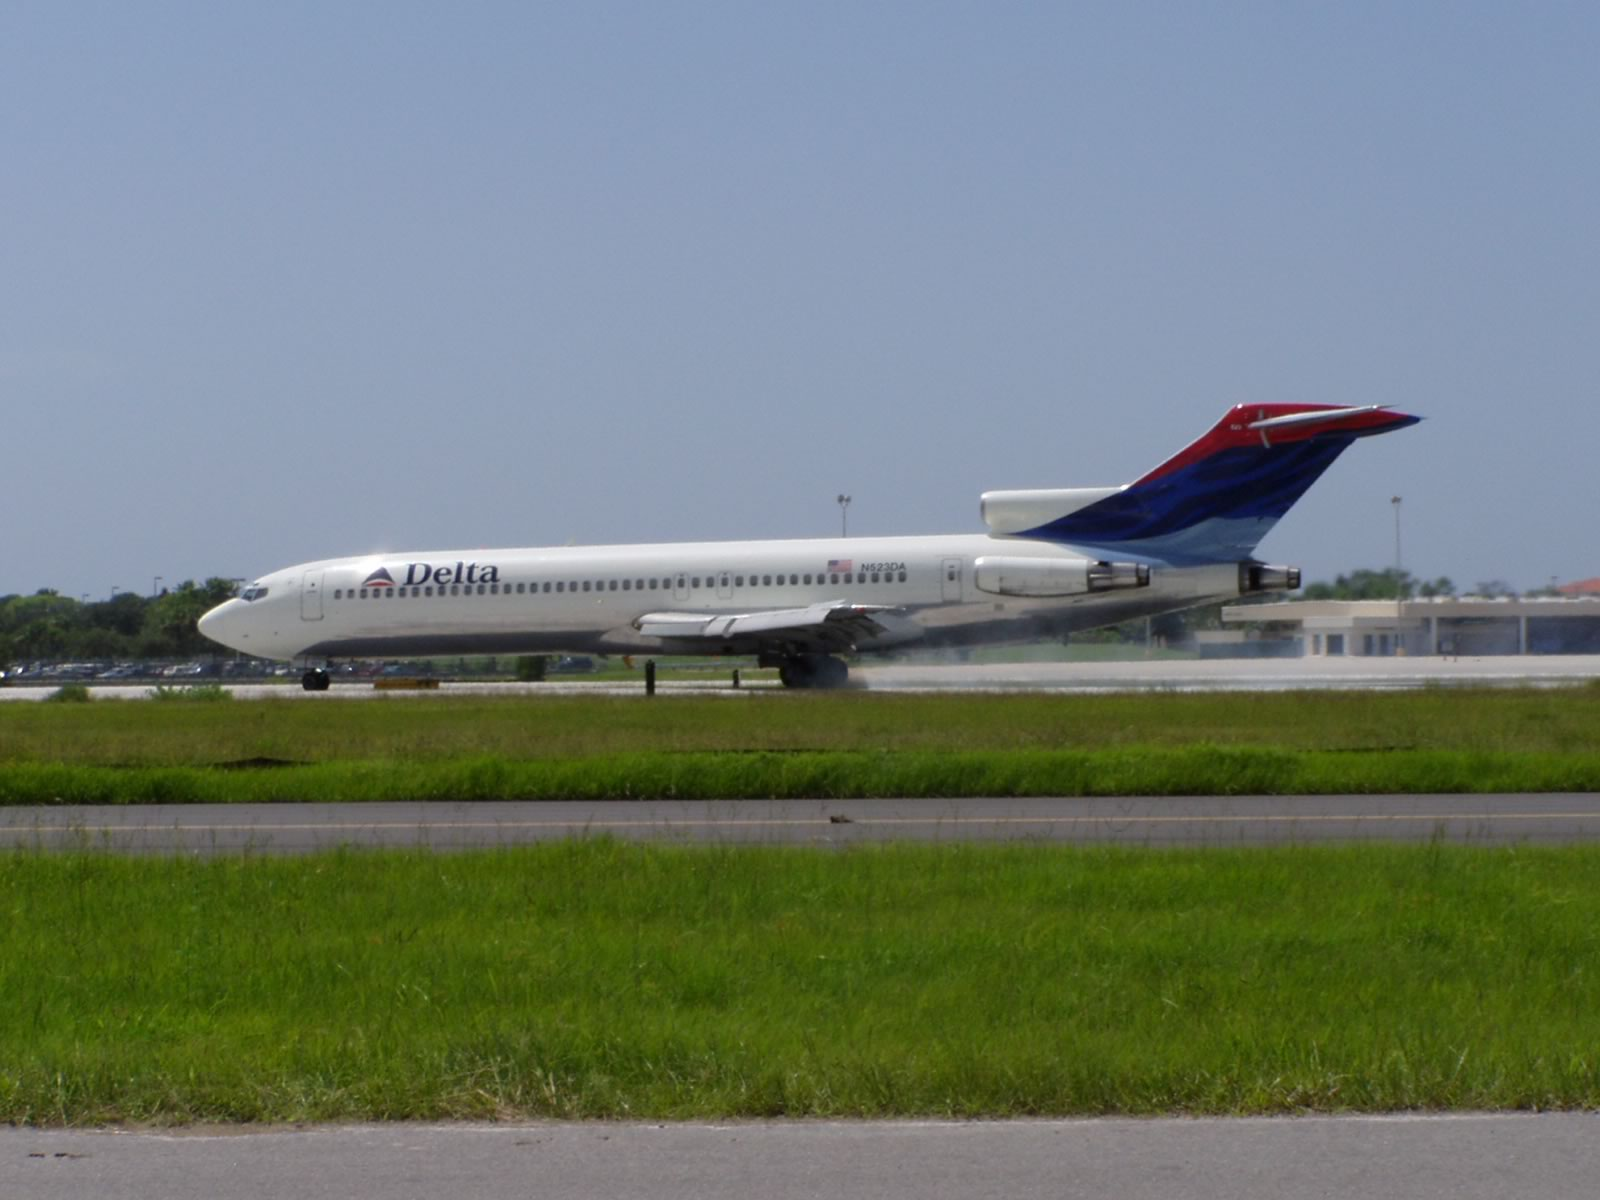 Boeing 727 in Delta Air Lines livery